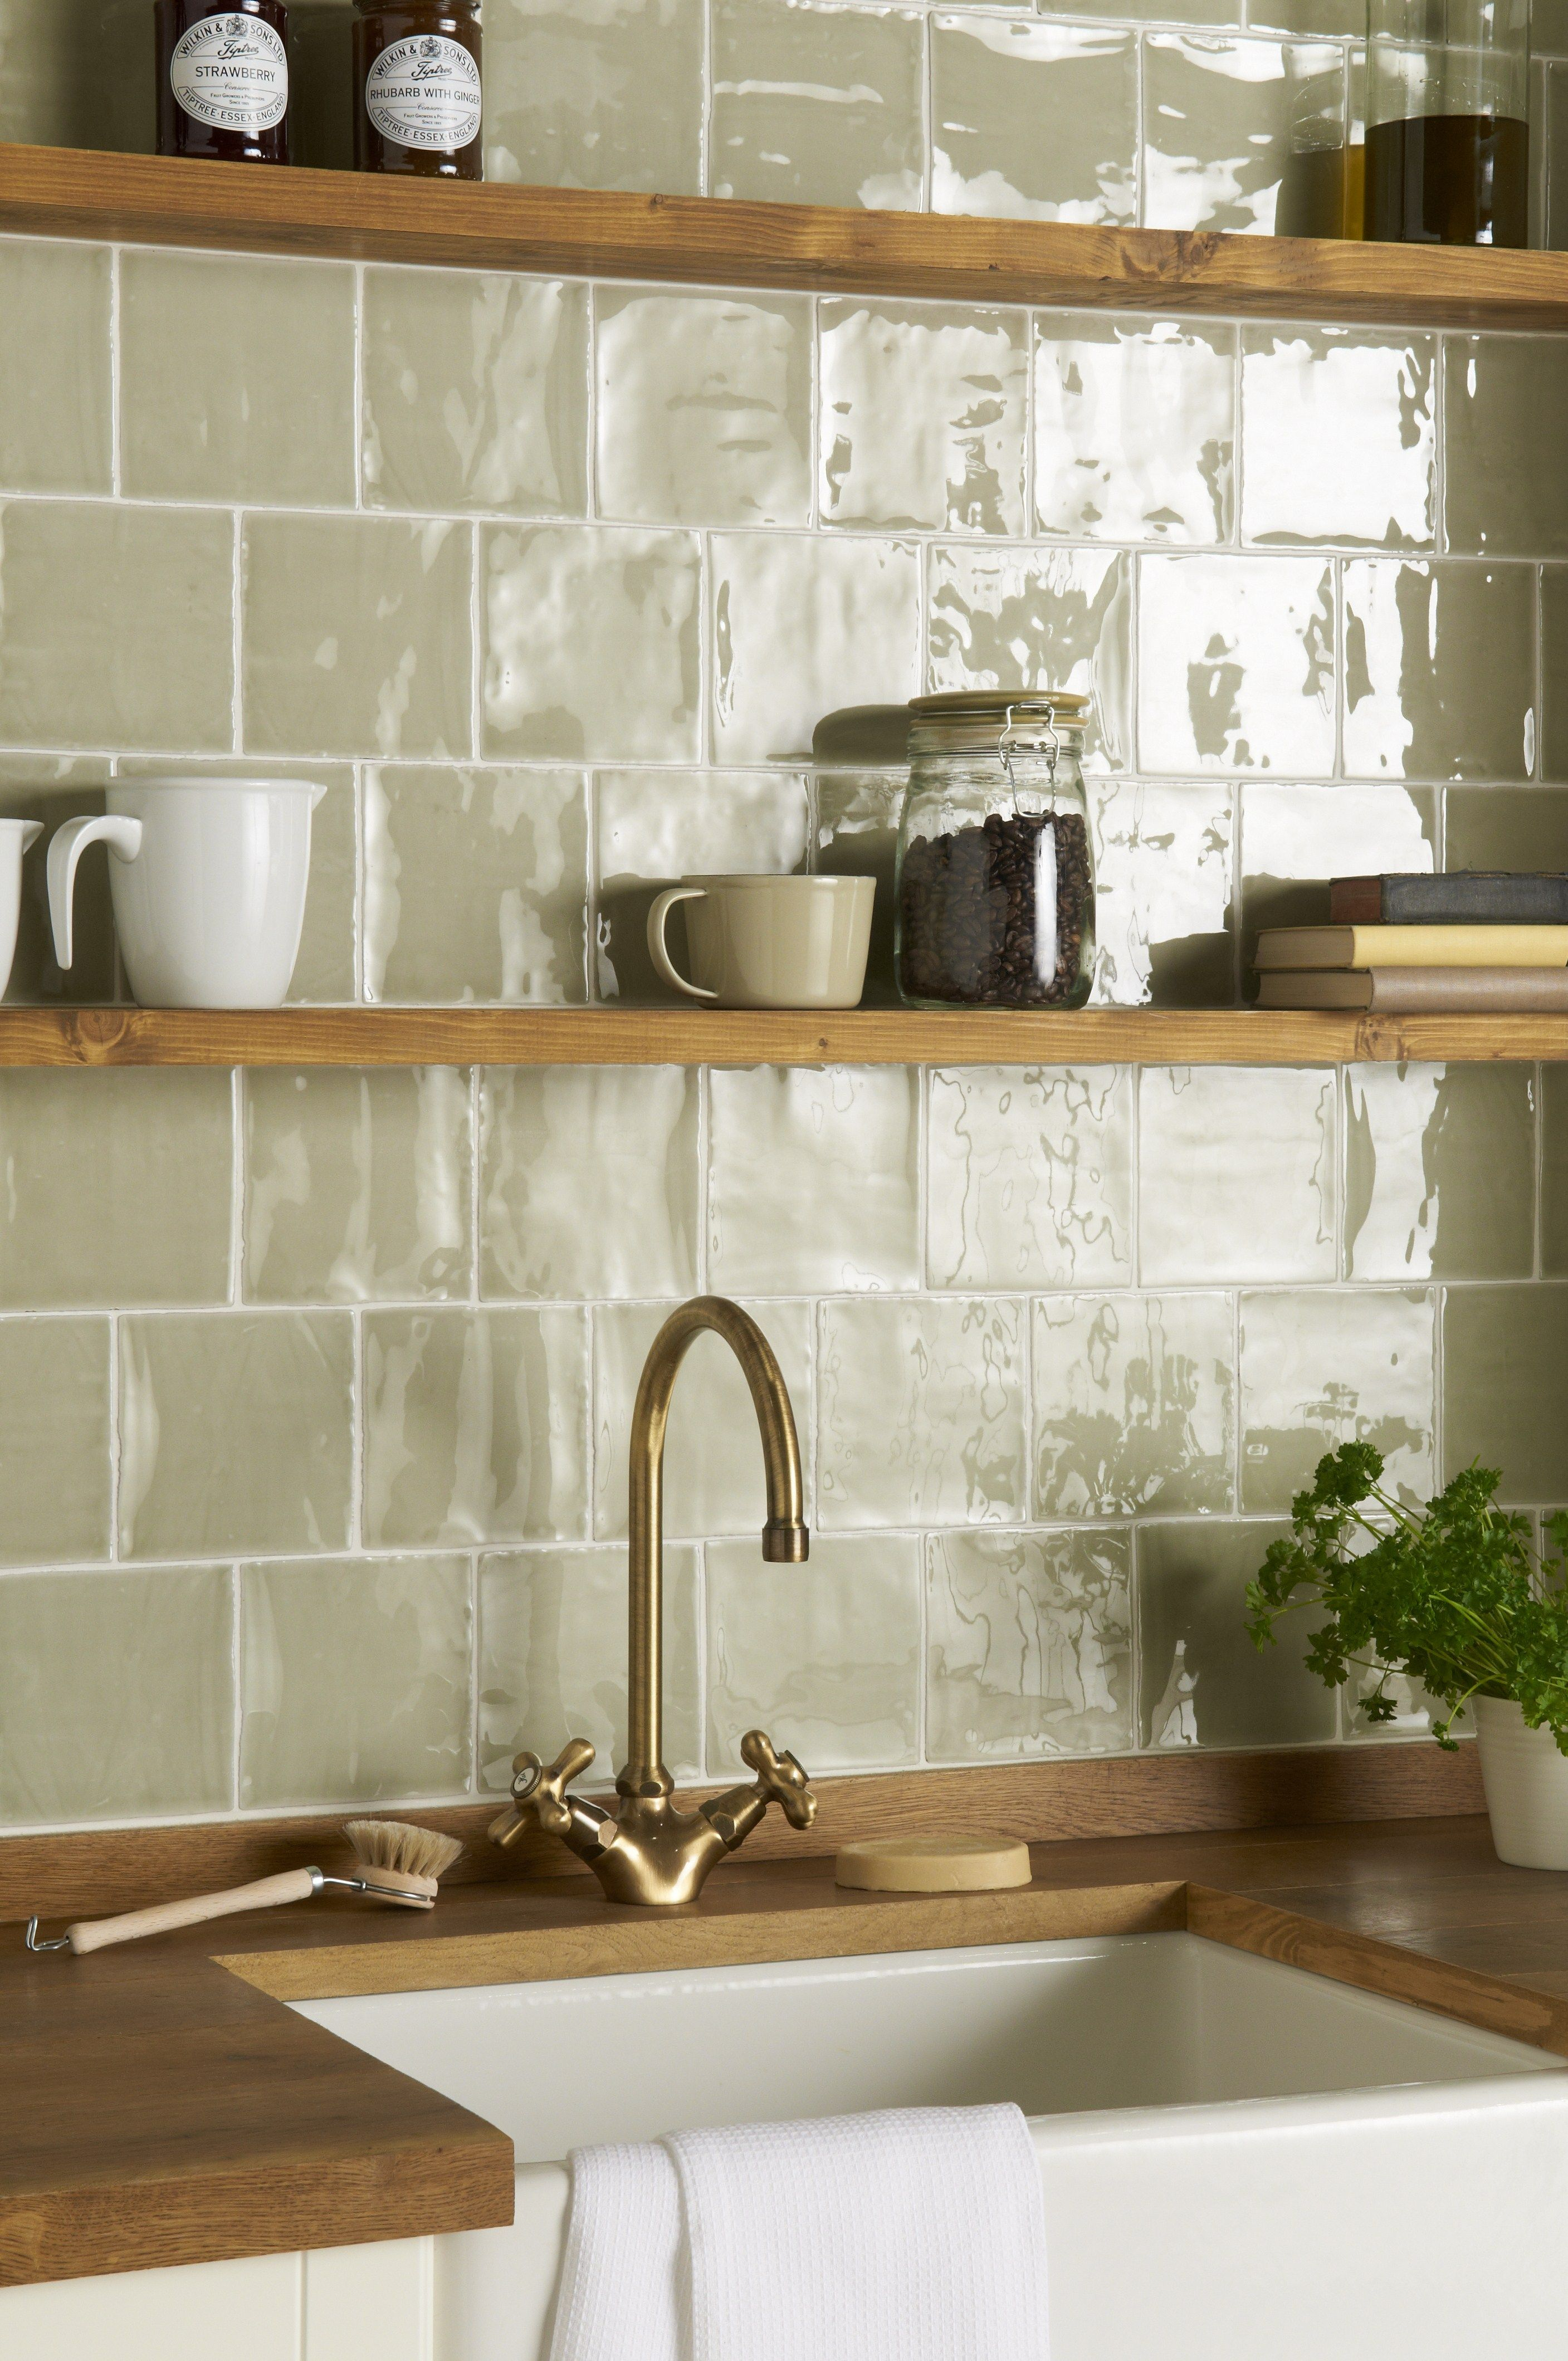 Getimages 2 815 4 239 Pixels Kitchen Wall Tiles Kitchen Tiles